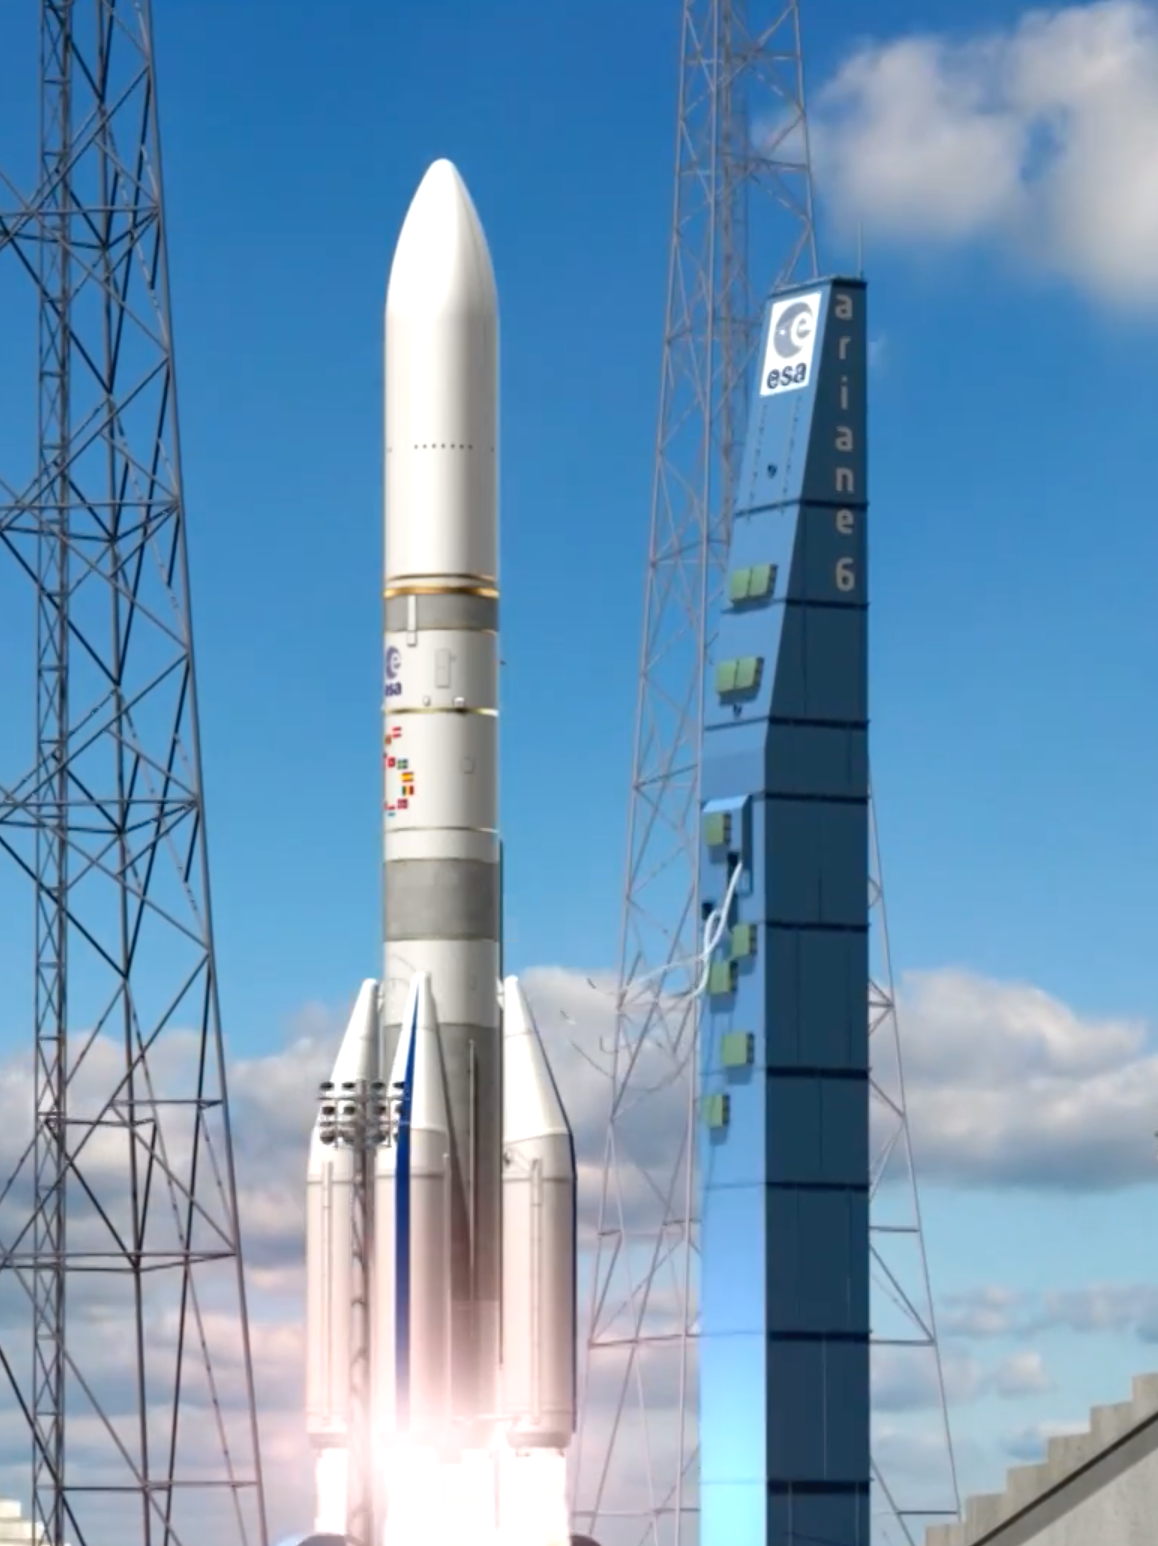 The European Space Agency launched a video of its Ariane 6 rocket, a modular three-stage launcher.